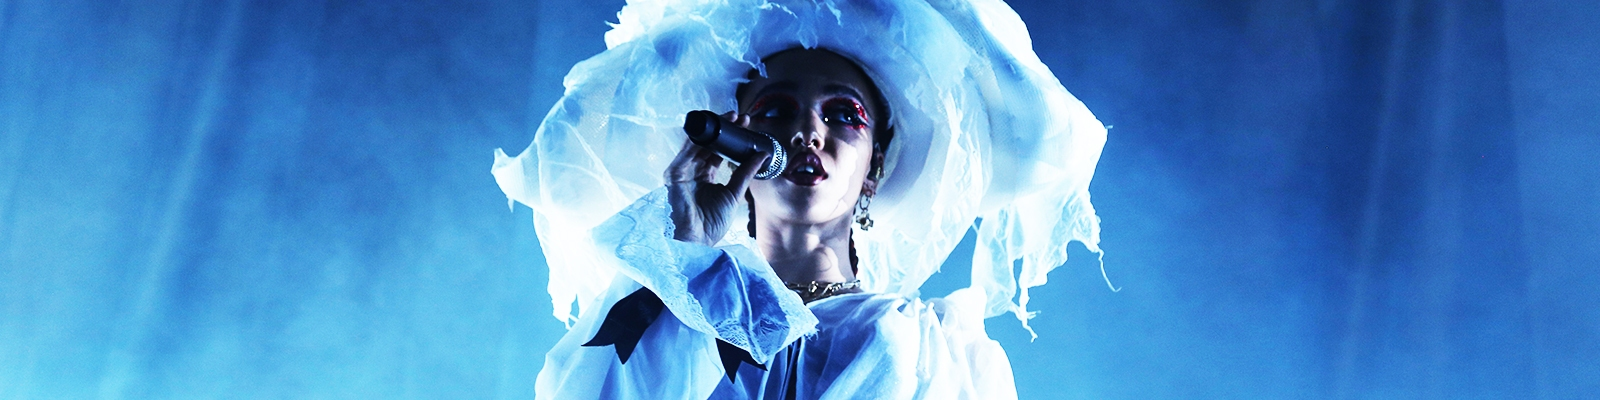 FKA Twigs' New Album, 'Magdalene,' Is A Stunning Example Of Both Intimacy And Restraint